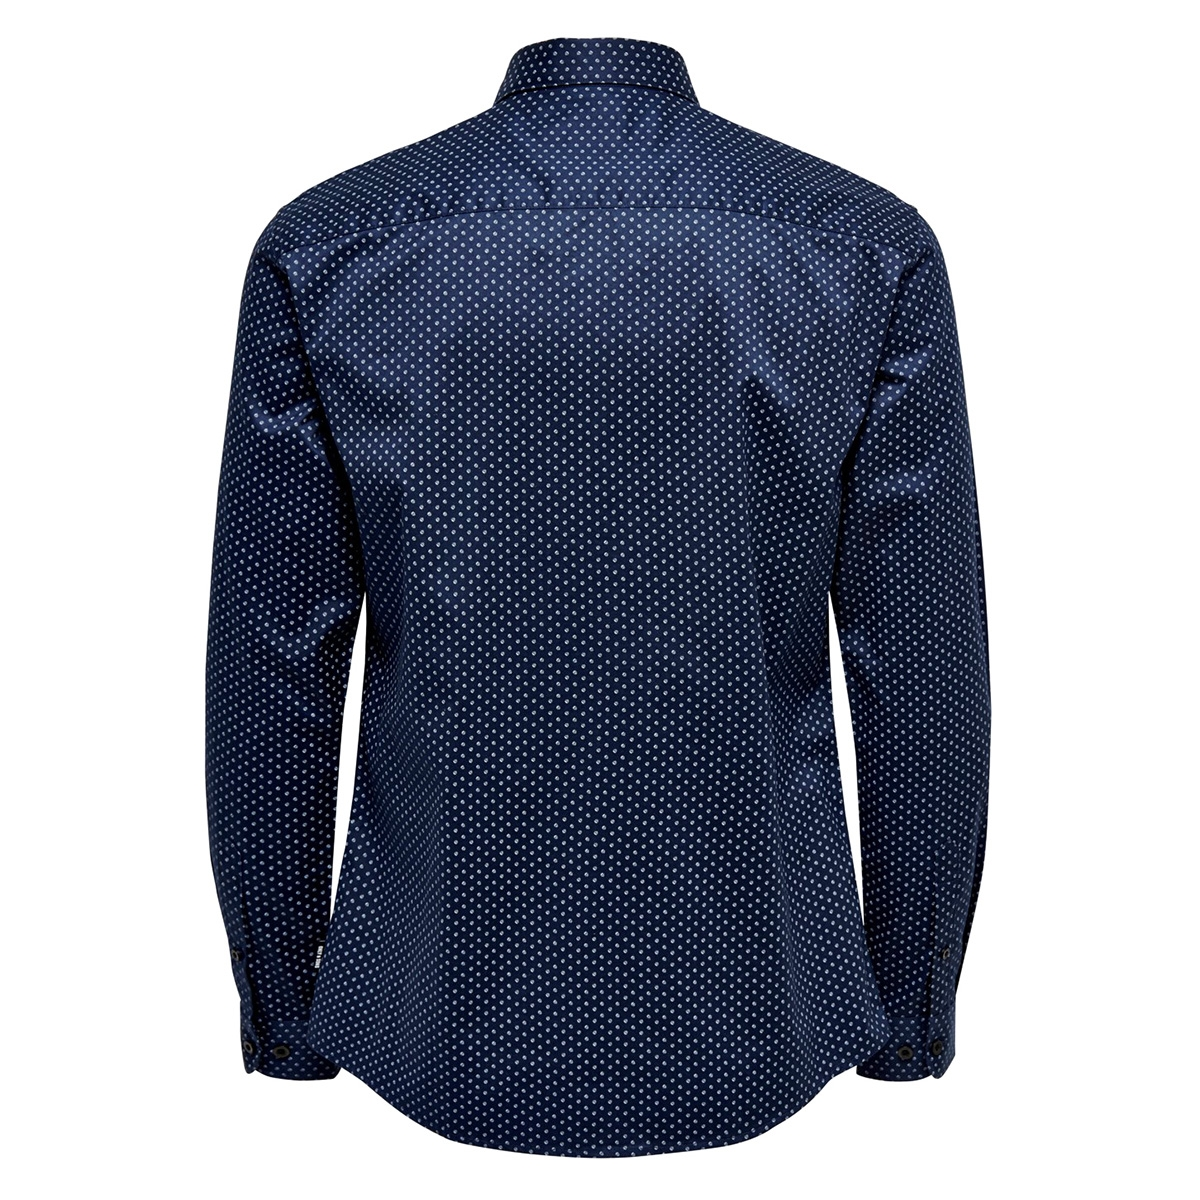 onsalves ls 2-ply aw simple aop shirt 22015030 only & sons overhemd dress blues